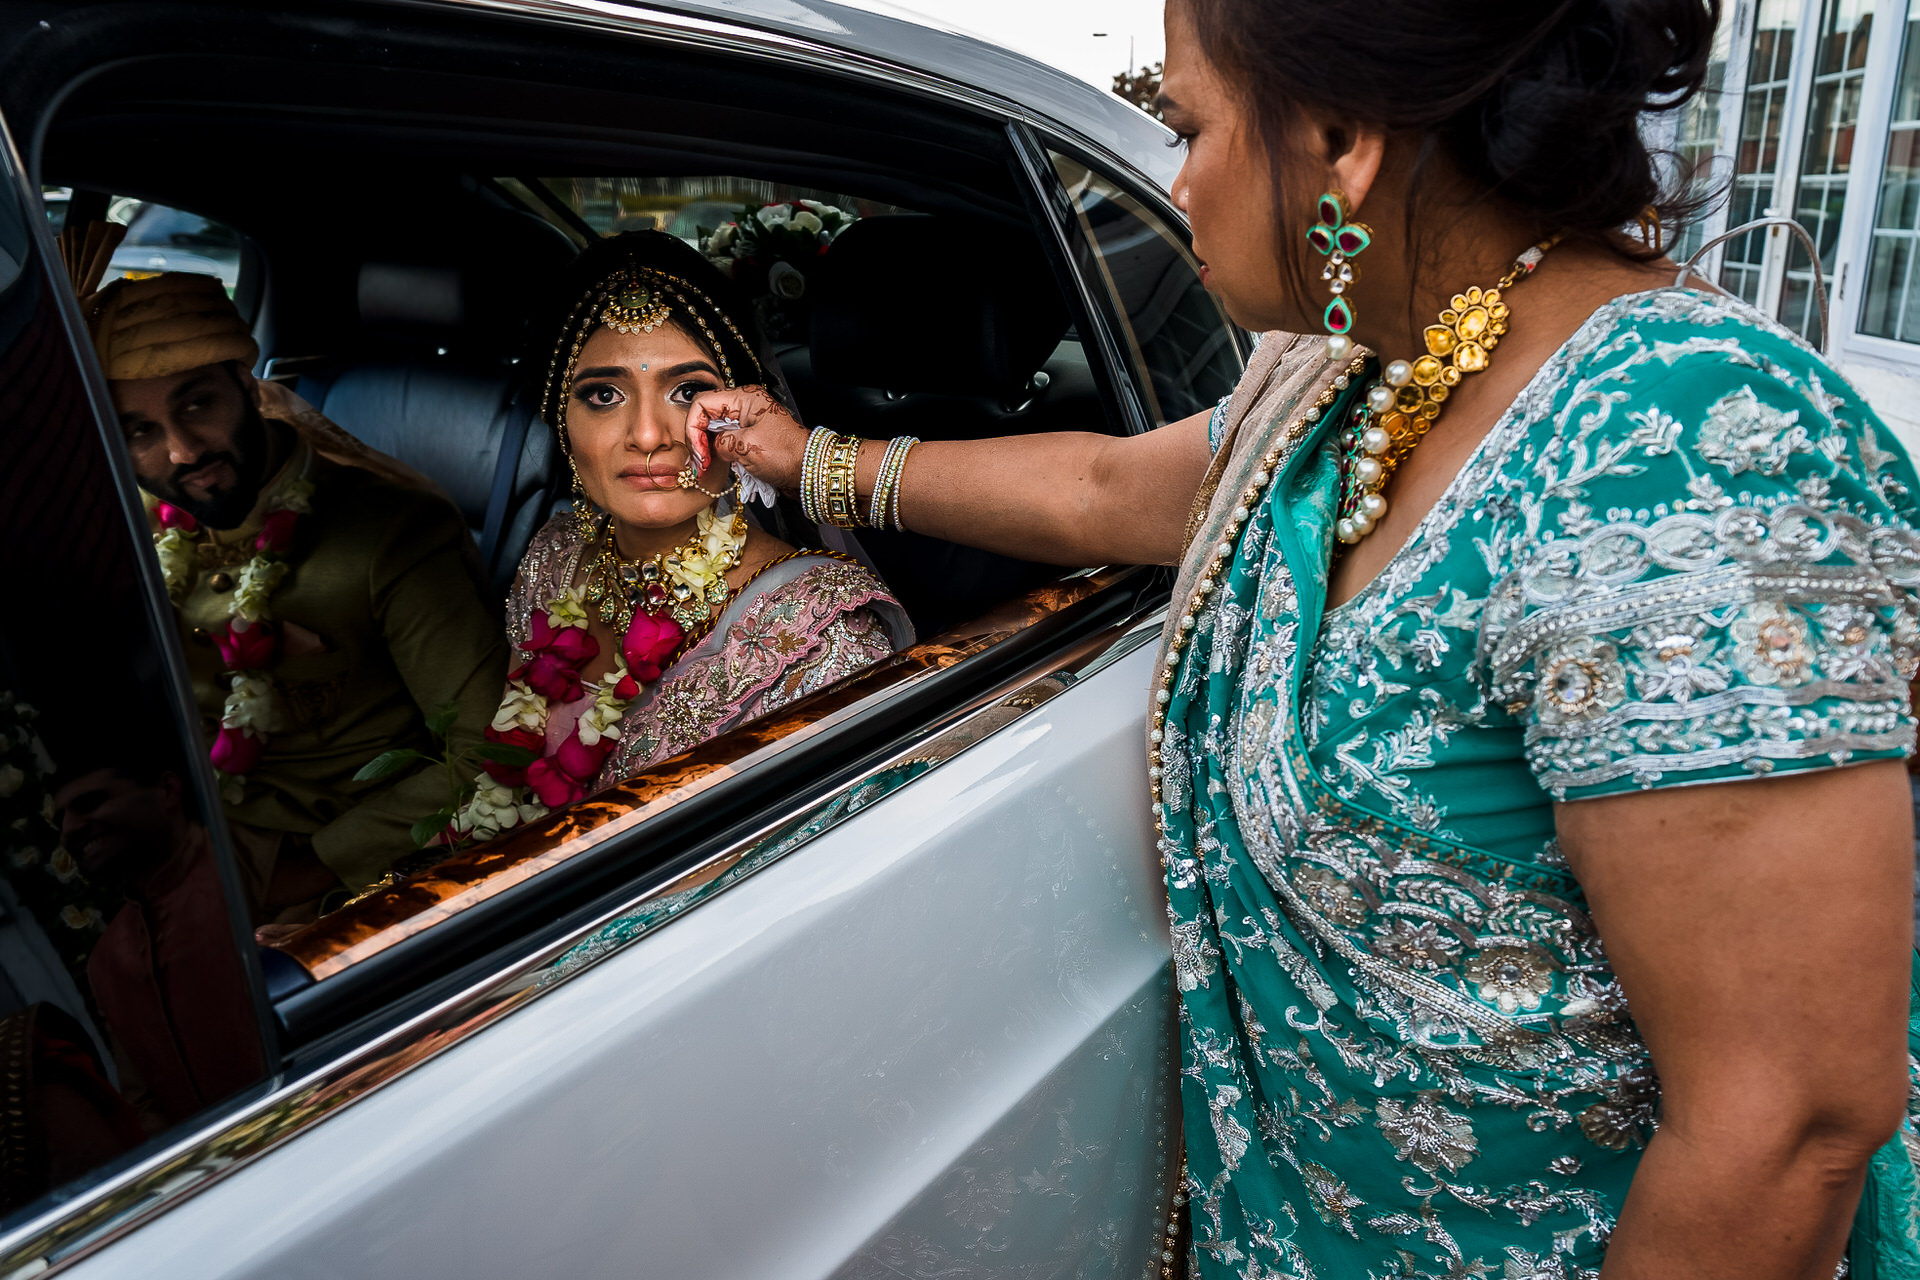 Indian Elopement Photography, London Weddings | A tear is wiped by the bride's mother as the bride prepares herself to leave